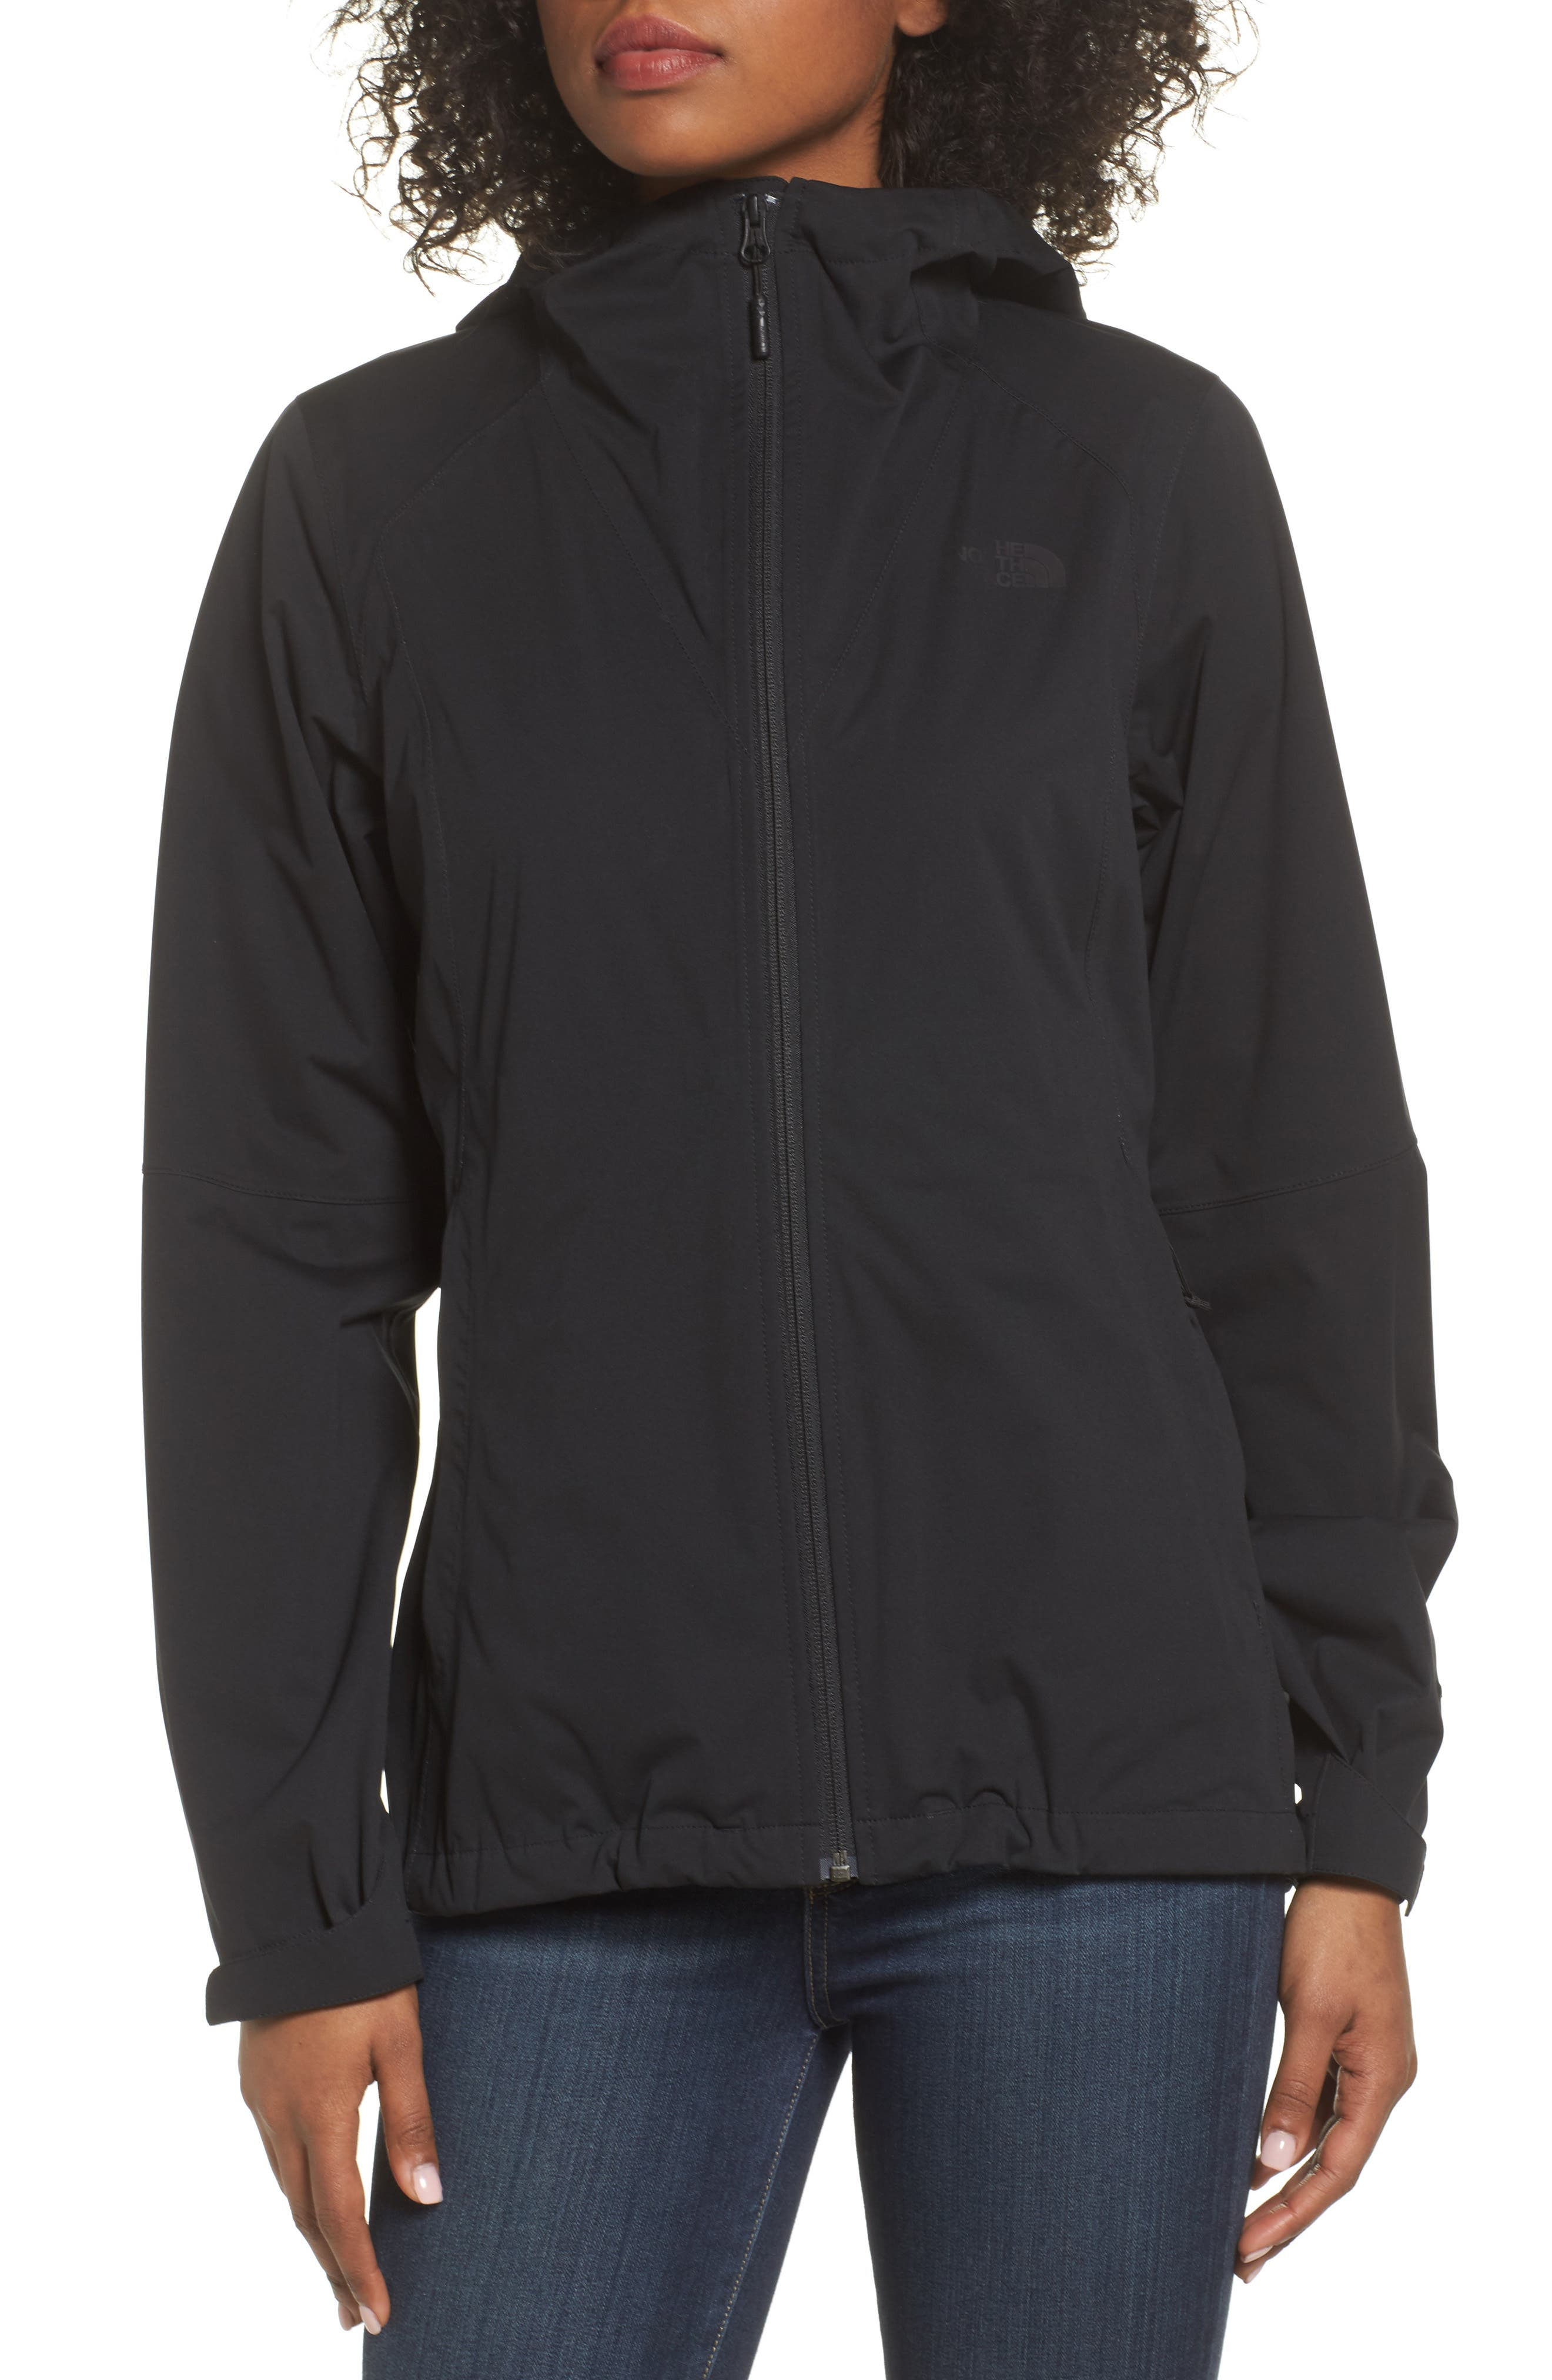 THE NORTH FACE, Allproof Stretch Jacket, Alternate thumbnail 5, color, 001